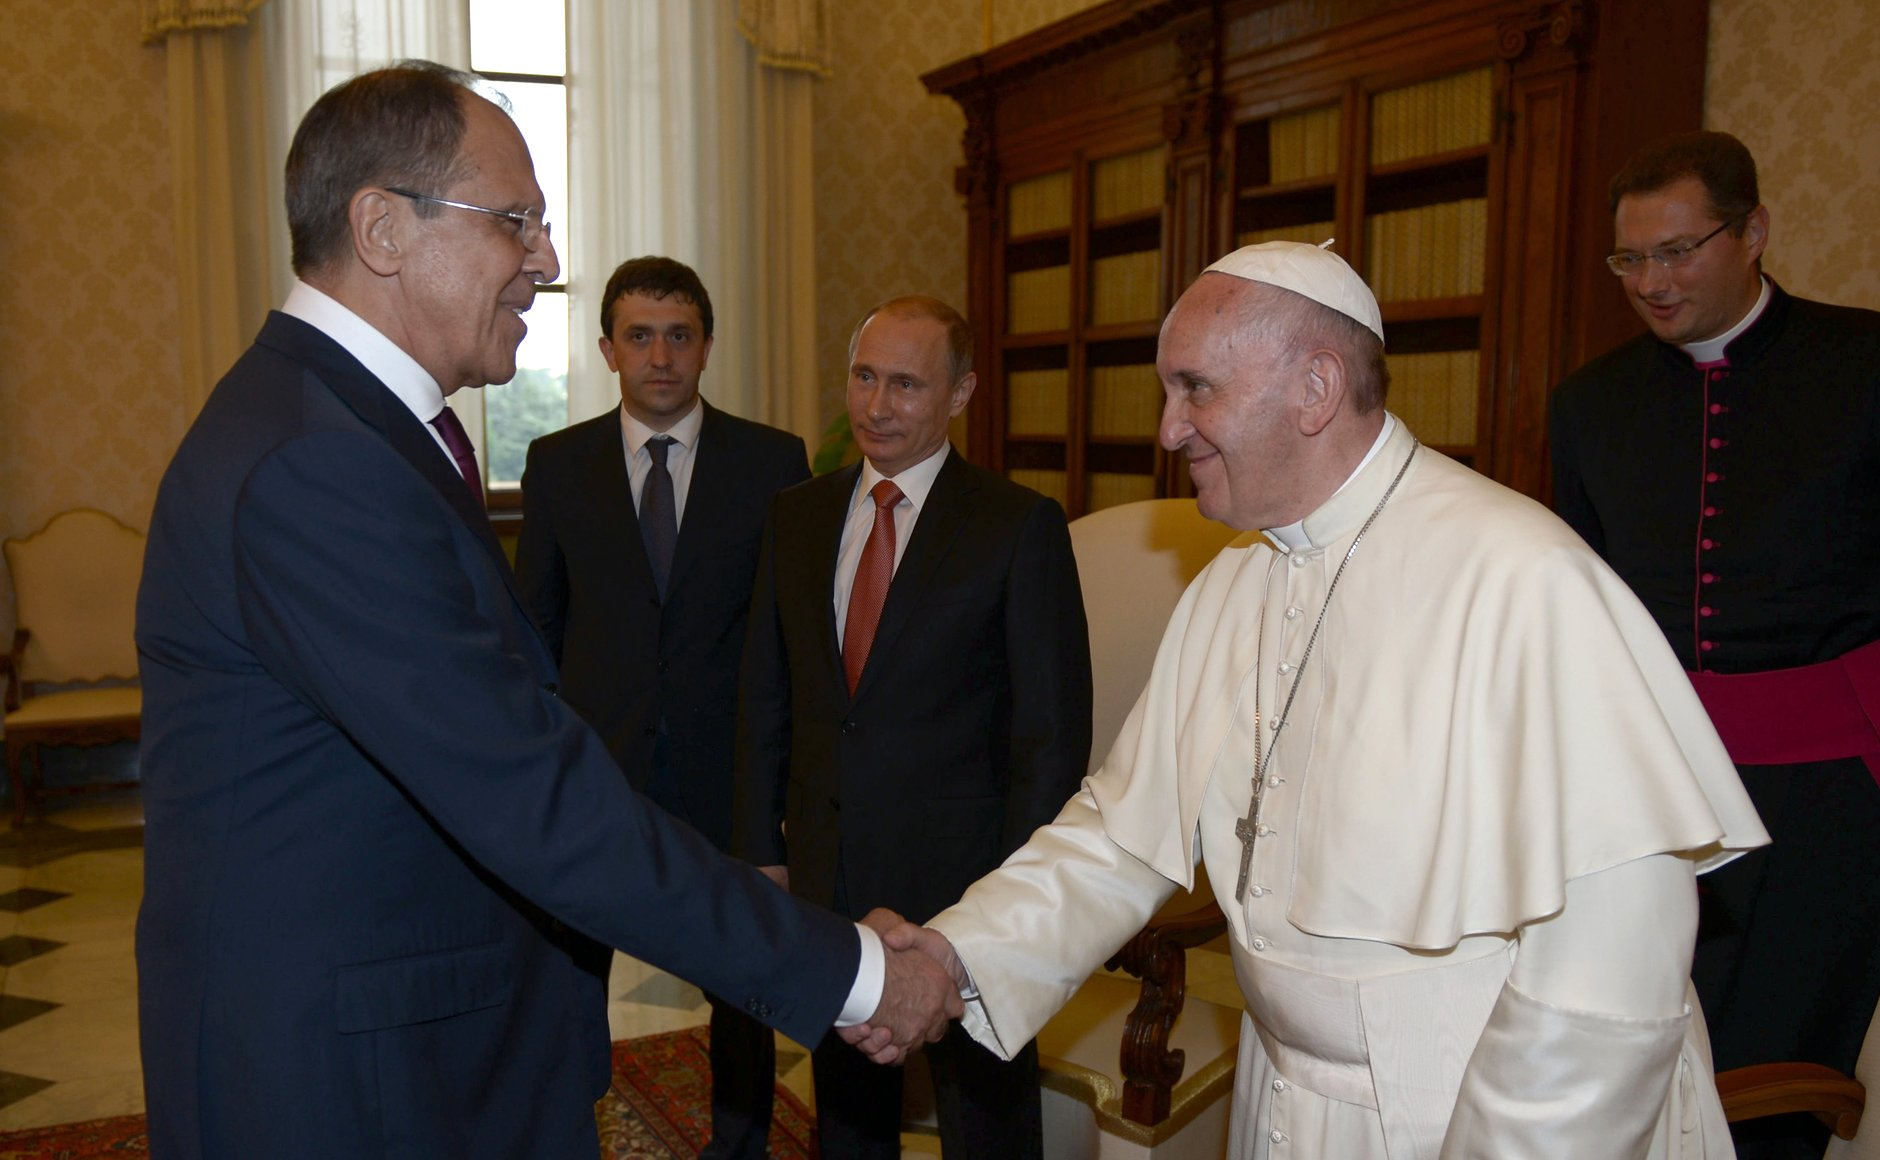 Vladimir Putin with Franciscus (2015-06-10) 1.jpg